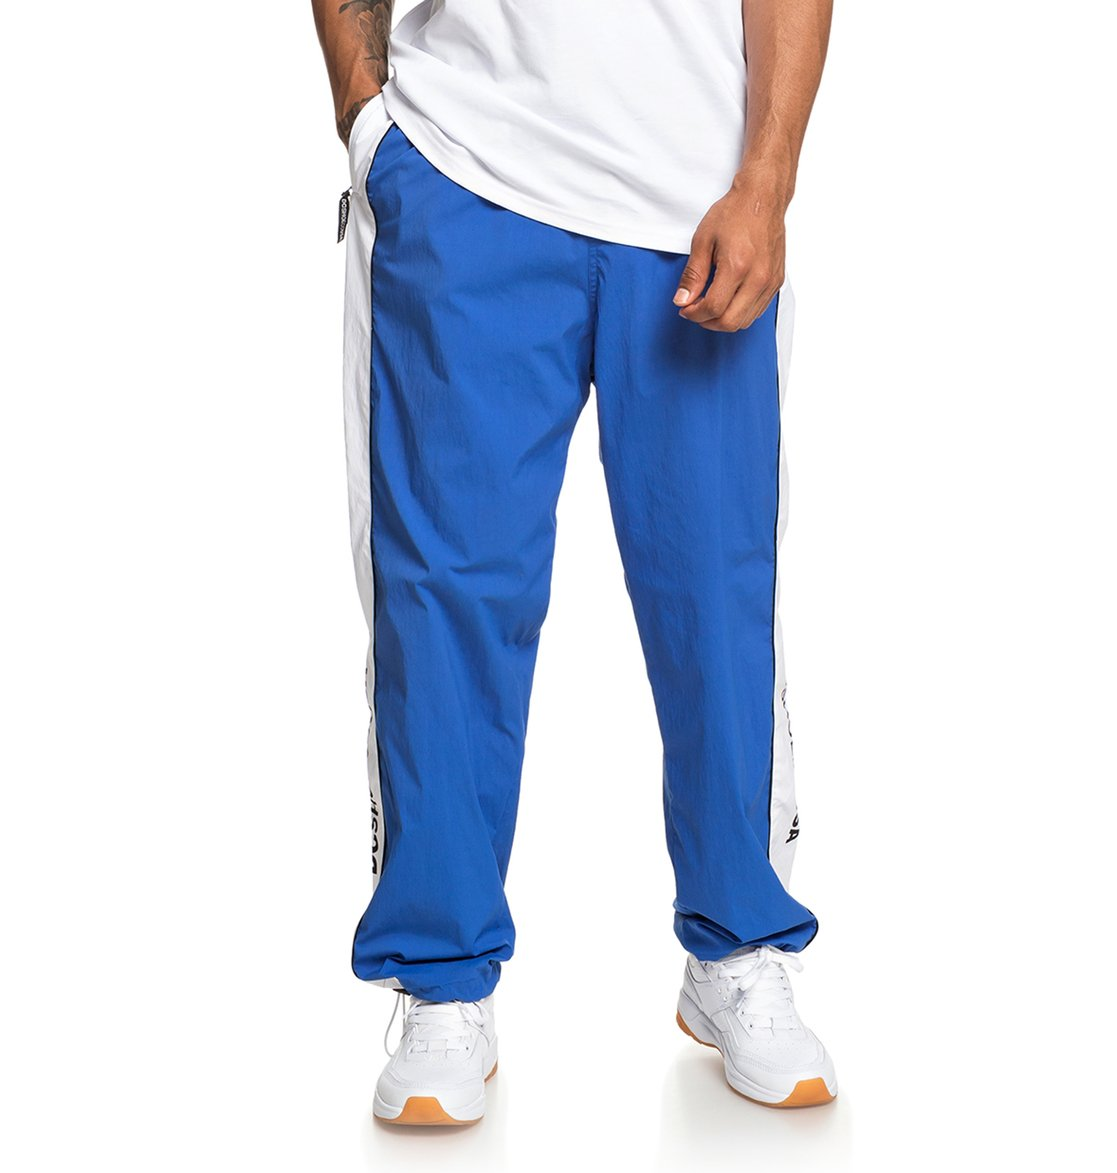 9325c88b1c7 Welwyn - Tracksuit Bottoms for Men